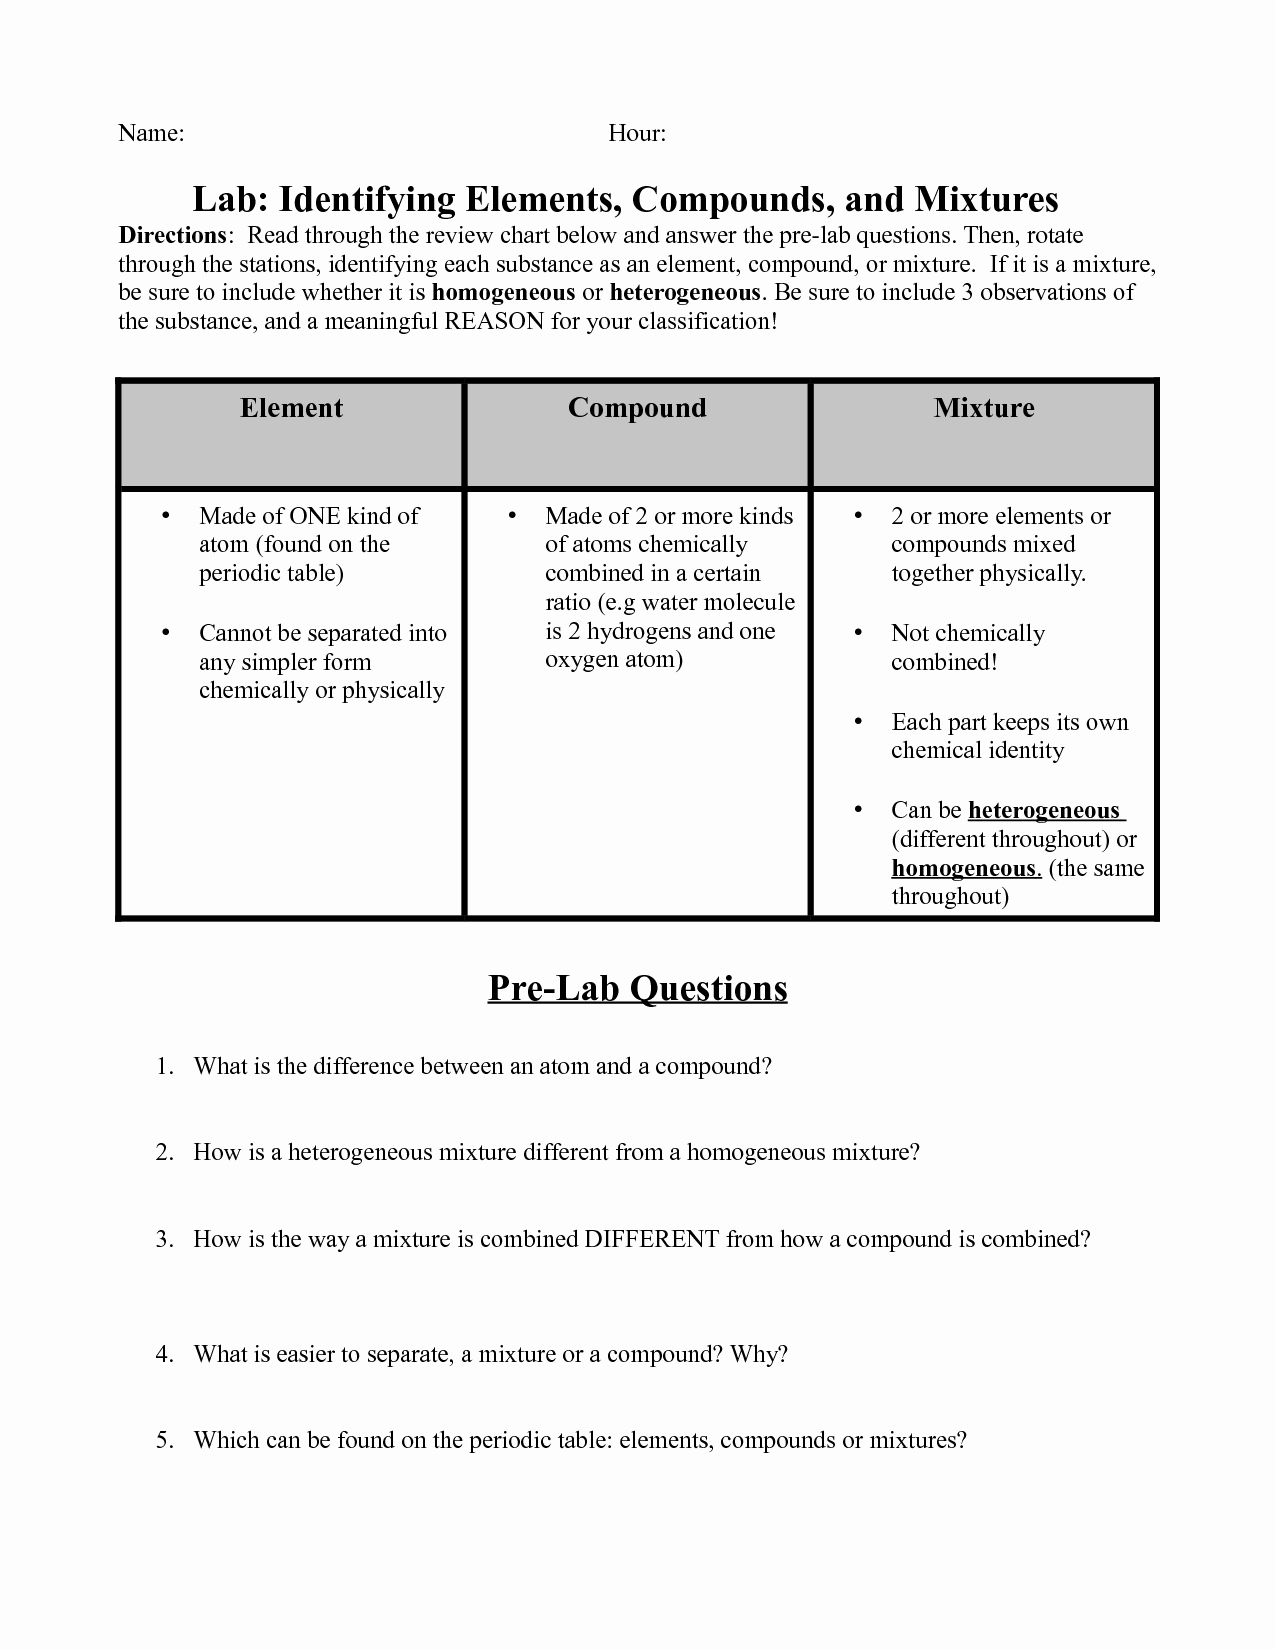 Elements Compounds and Mixtures Worksheet Inspirational 17 Best Of Elements Pounds and Mixtures